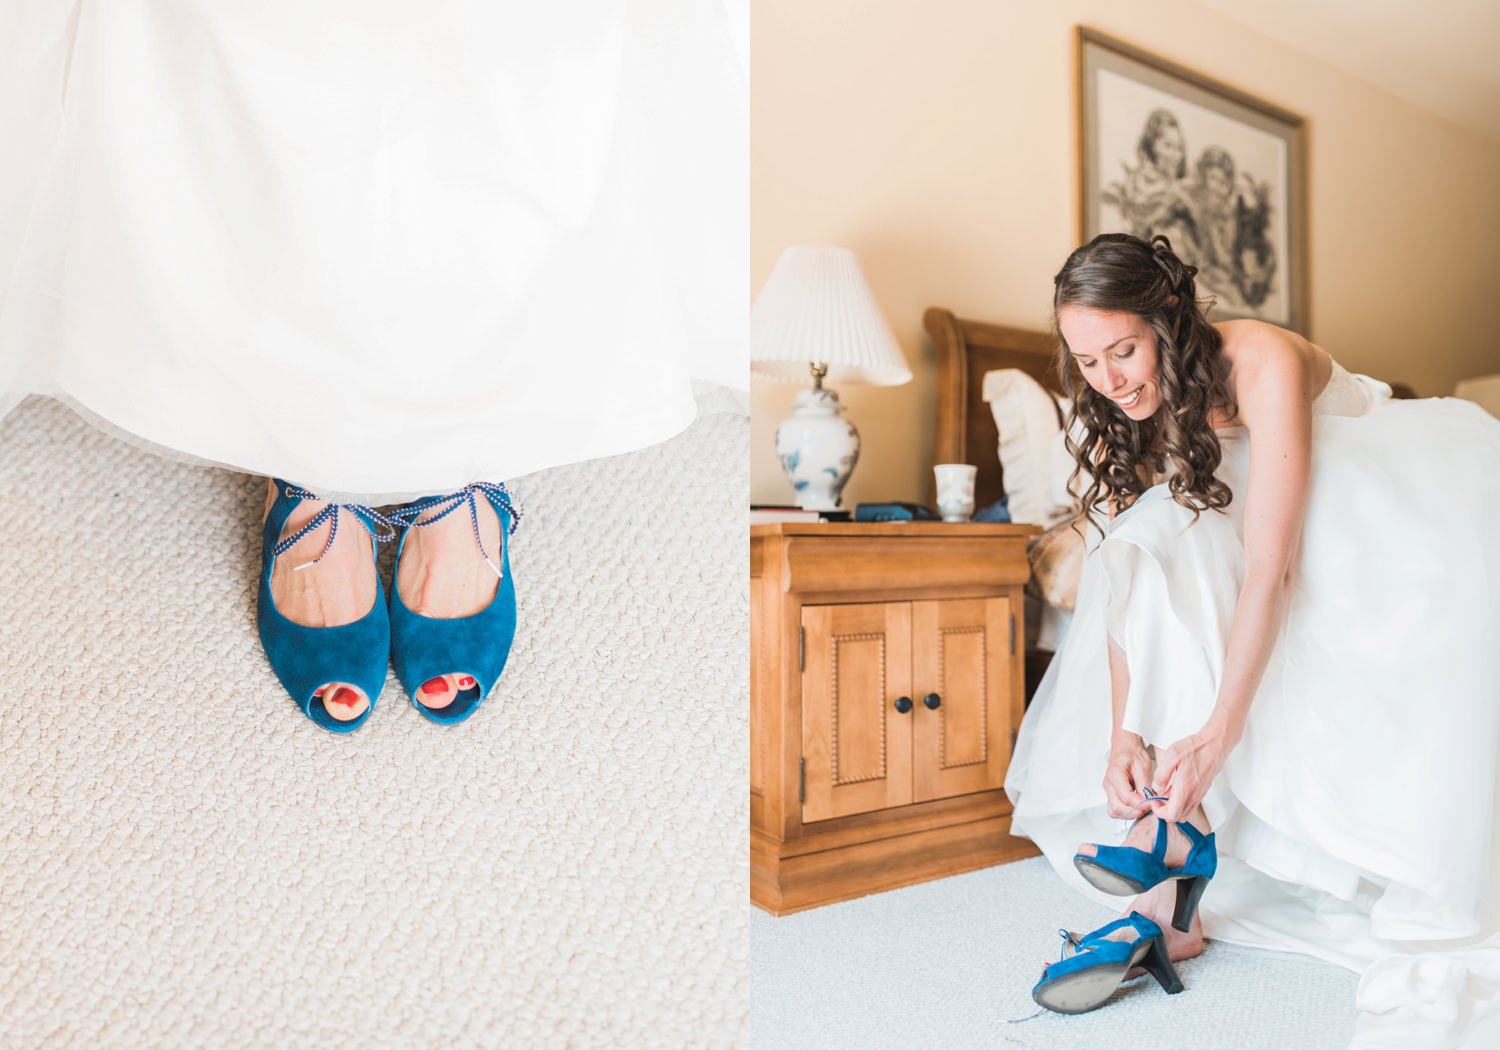 Bride slipping on her wedding shoes